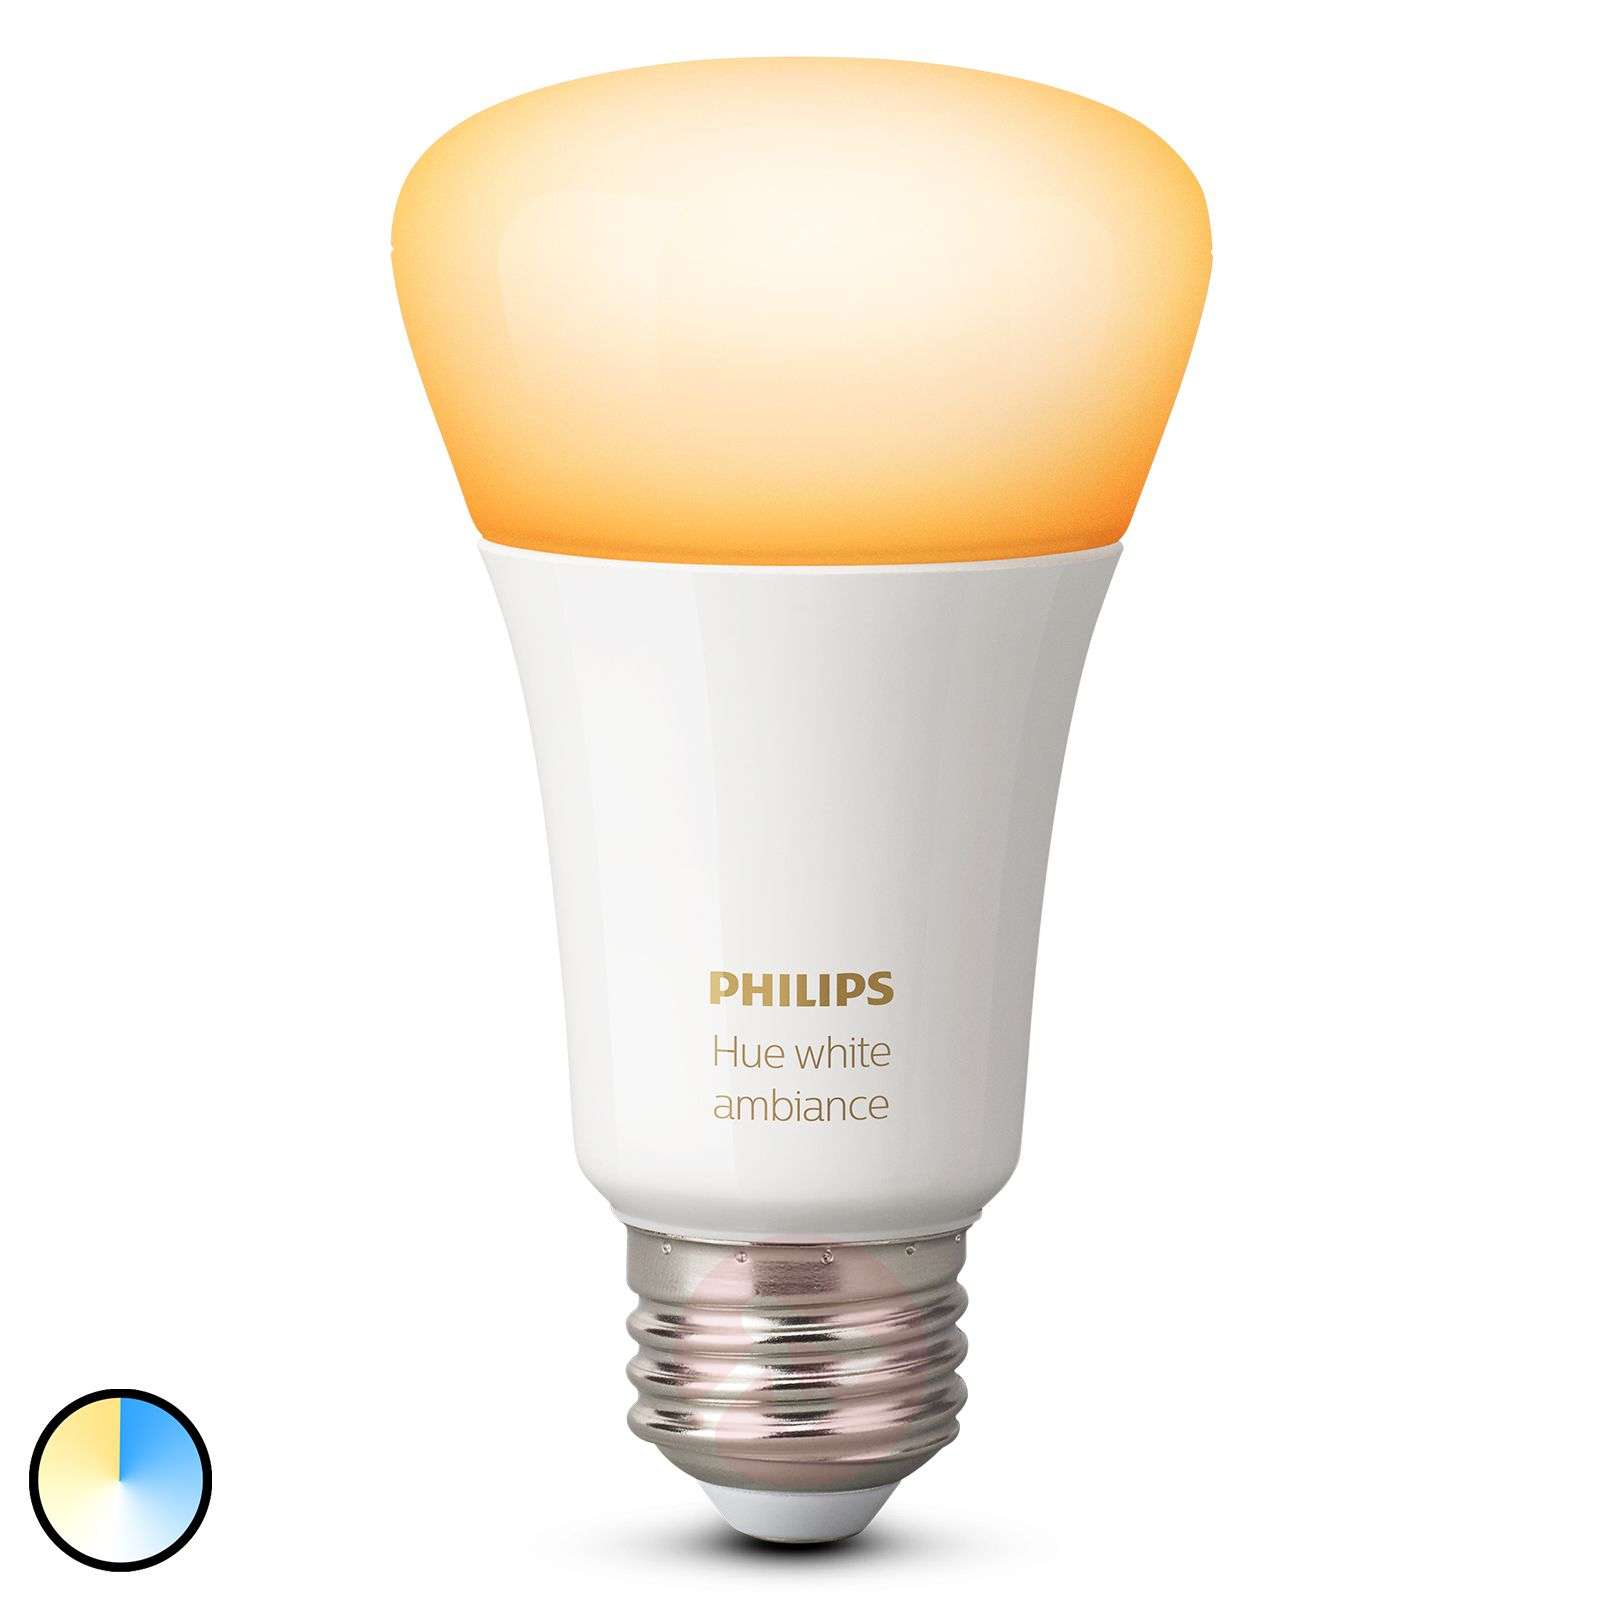 Philips Hue White Ambiance E27 8,5W-7534125-01